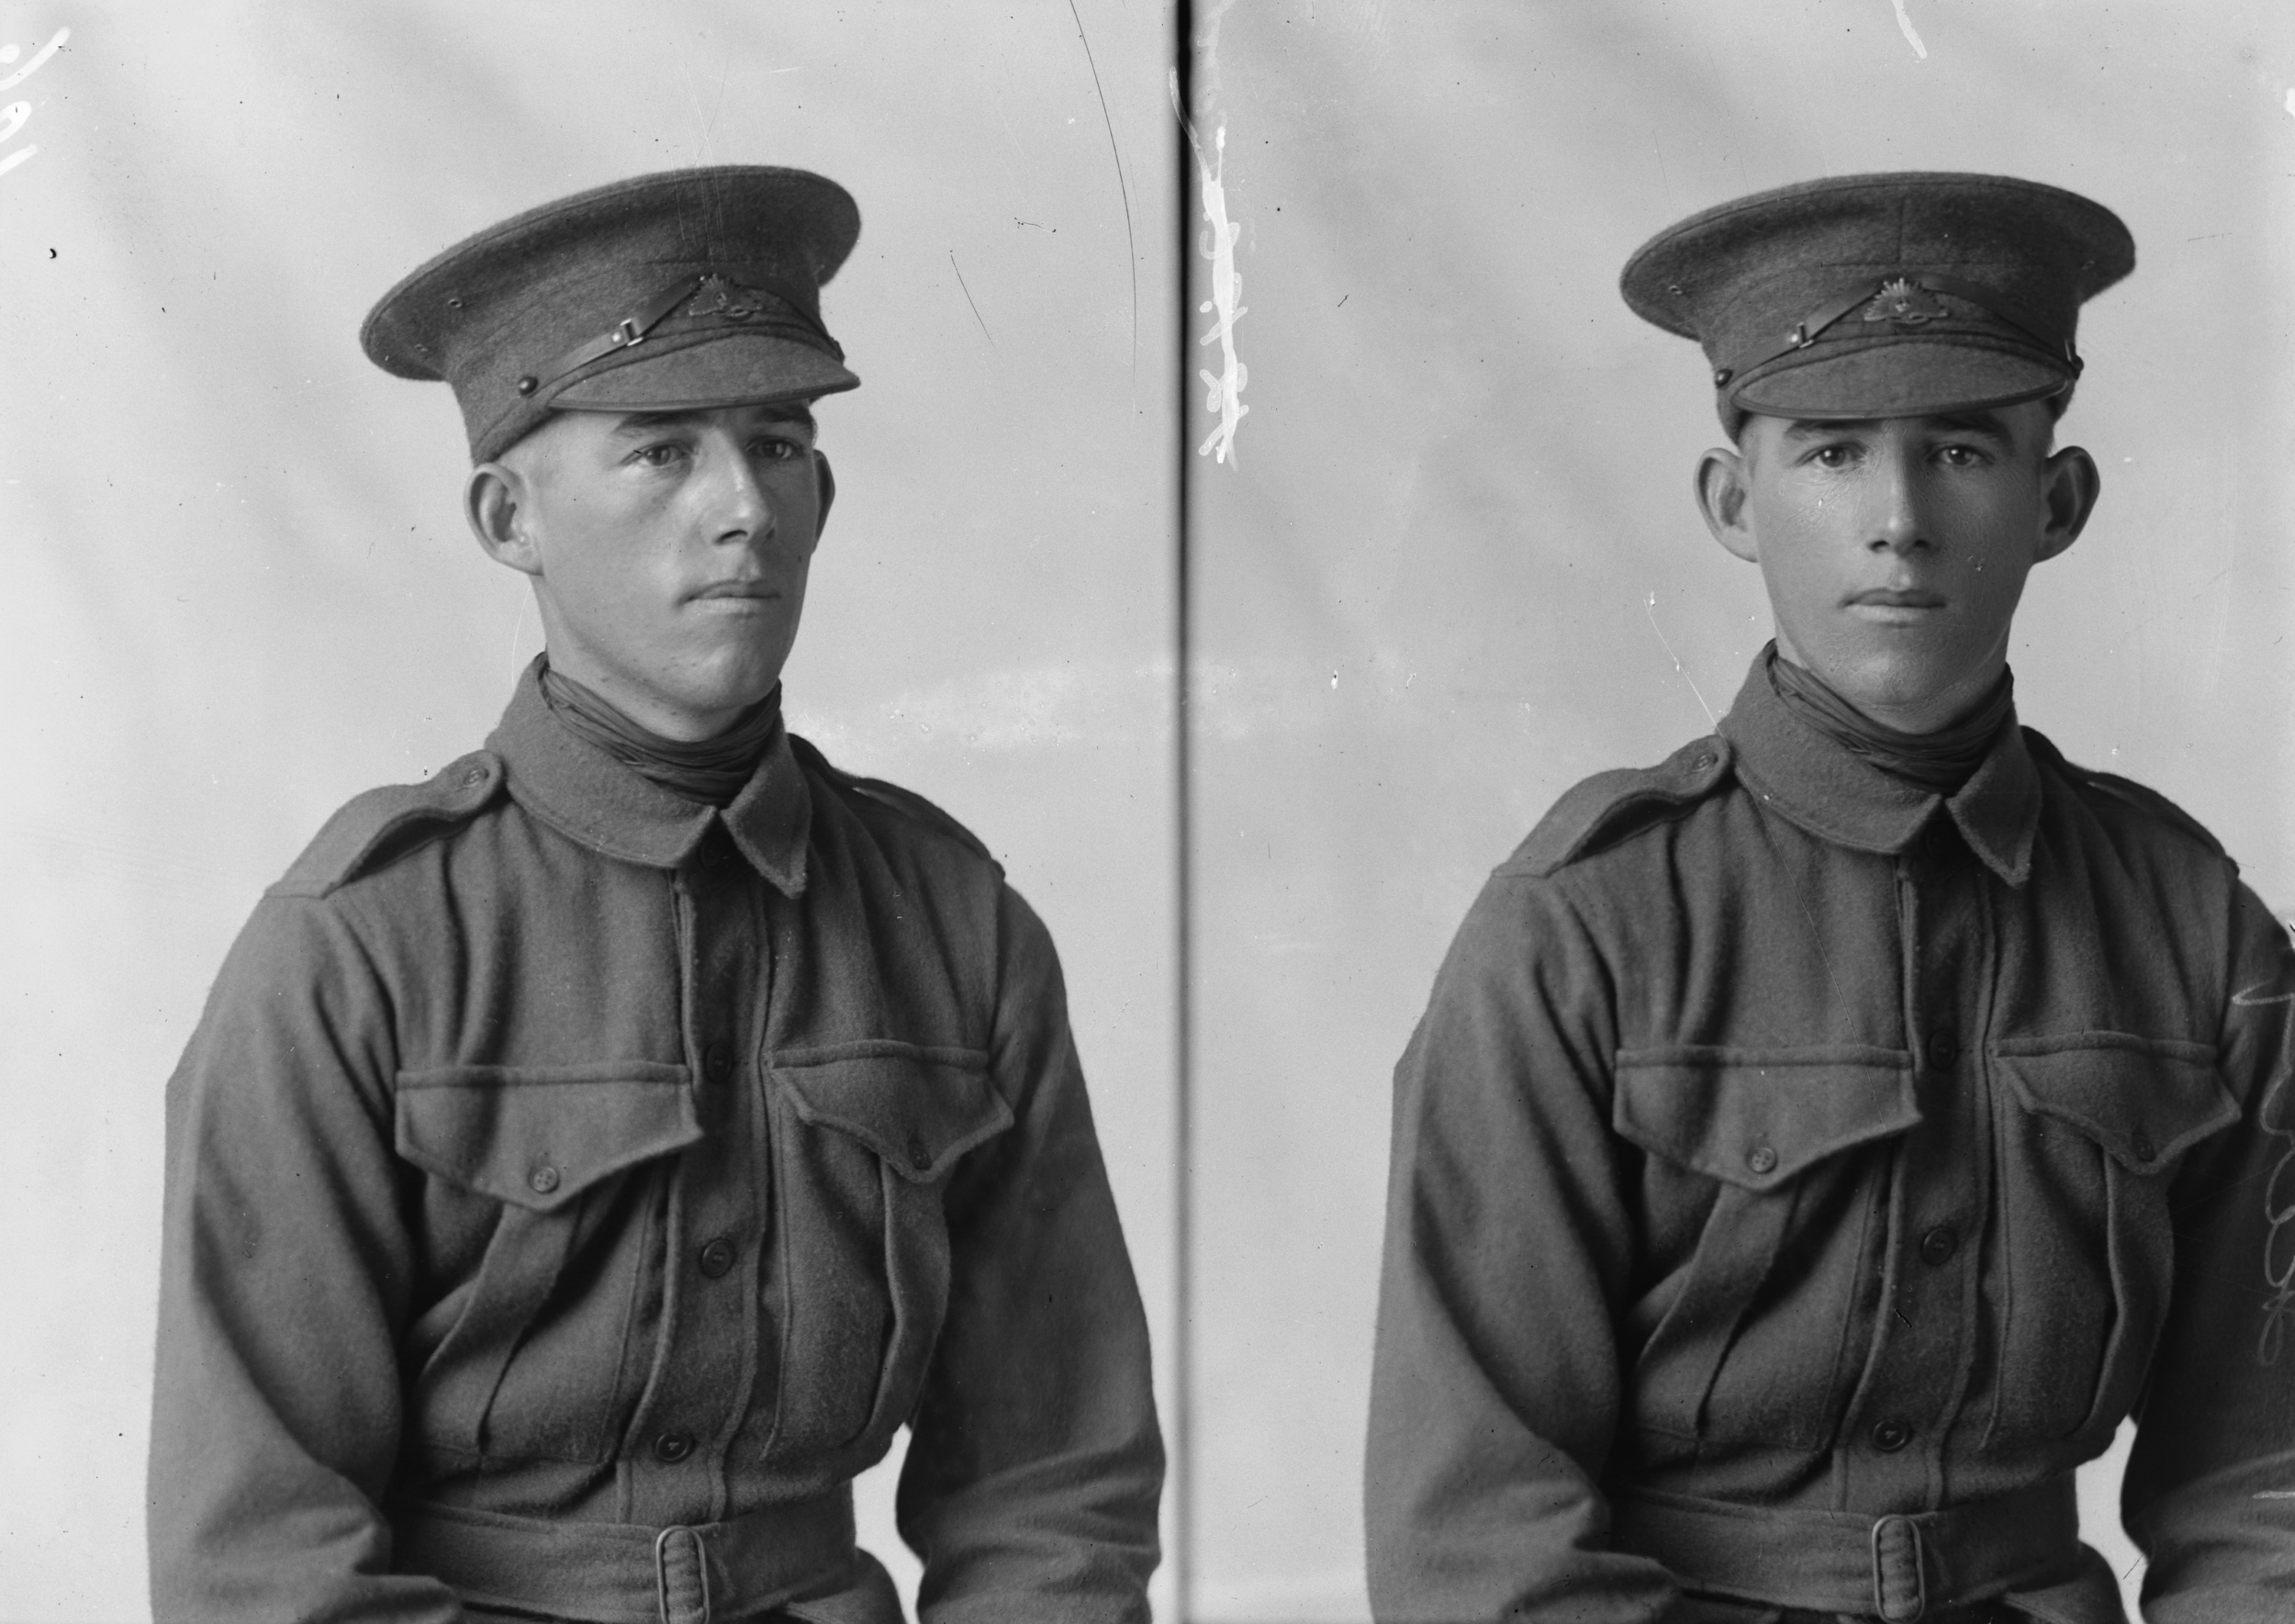 Photographed at the Dease Studio, 117 Barrack Street Perth WA Image courtesy of the State Library of Western Australia: 108028PD